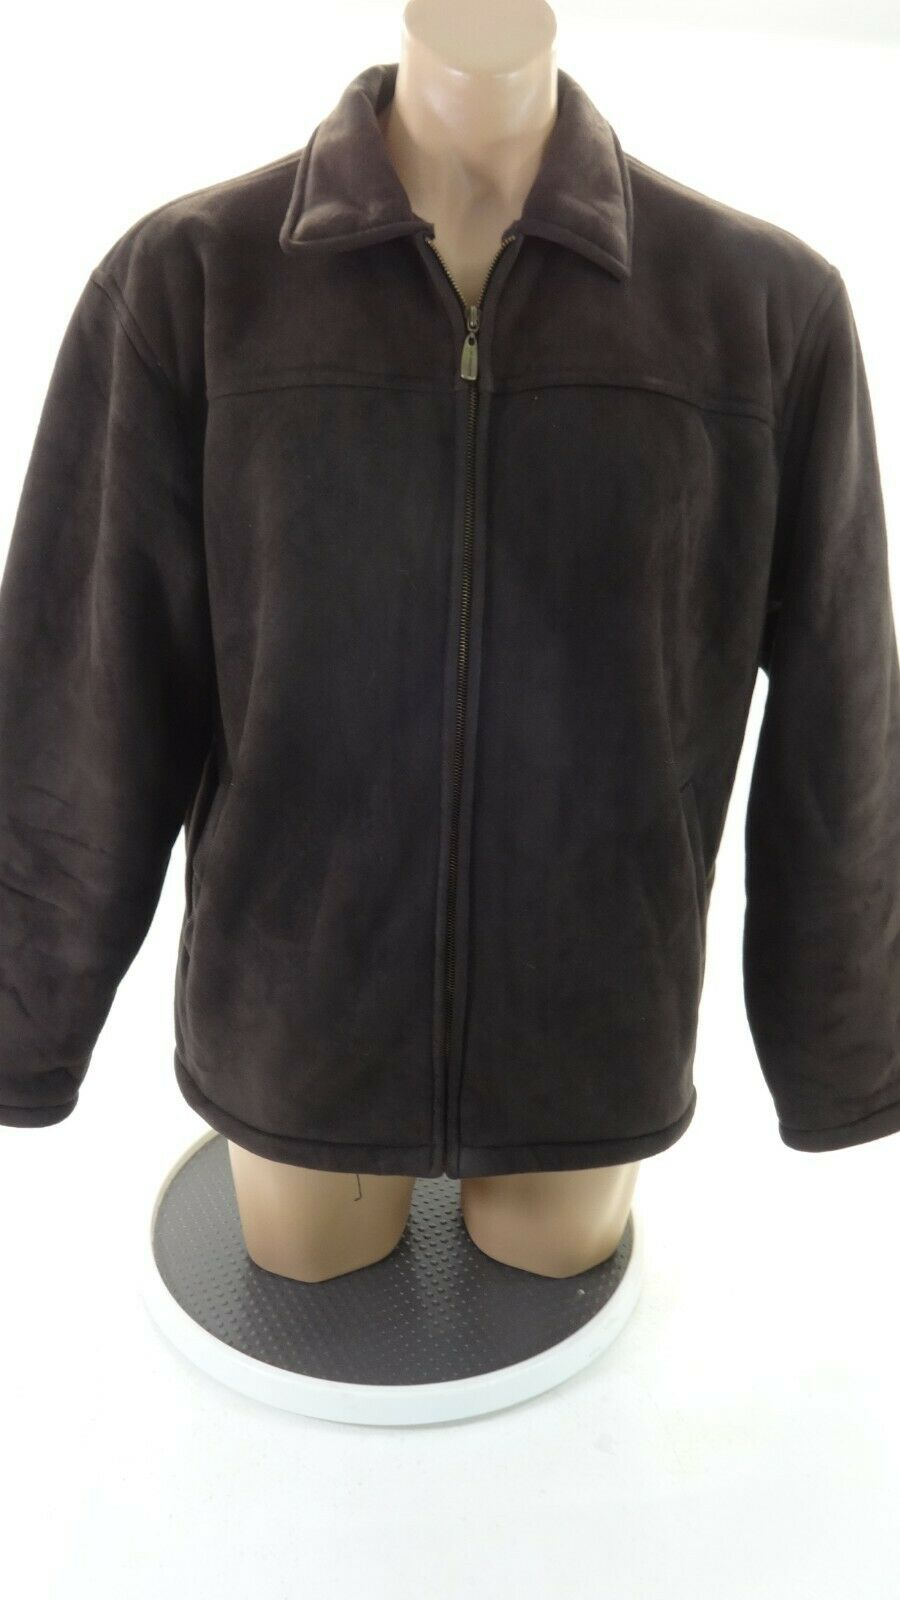 Whispering Smith HOMME Daim Marron Zip Frontal Décontracté